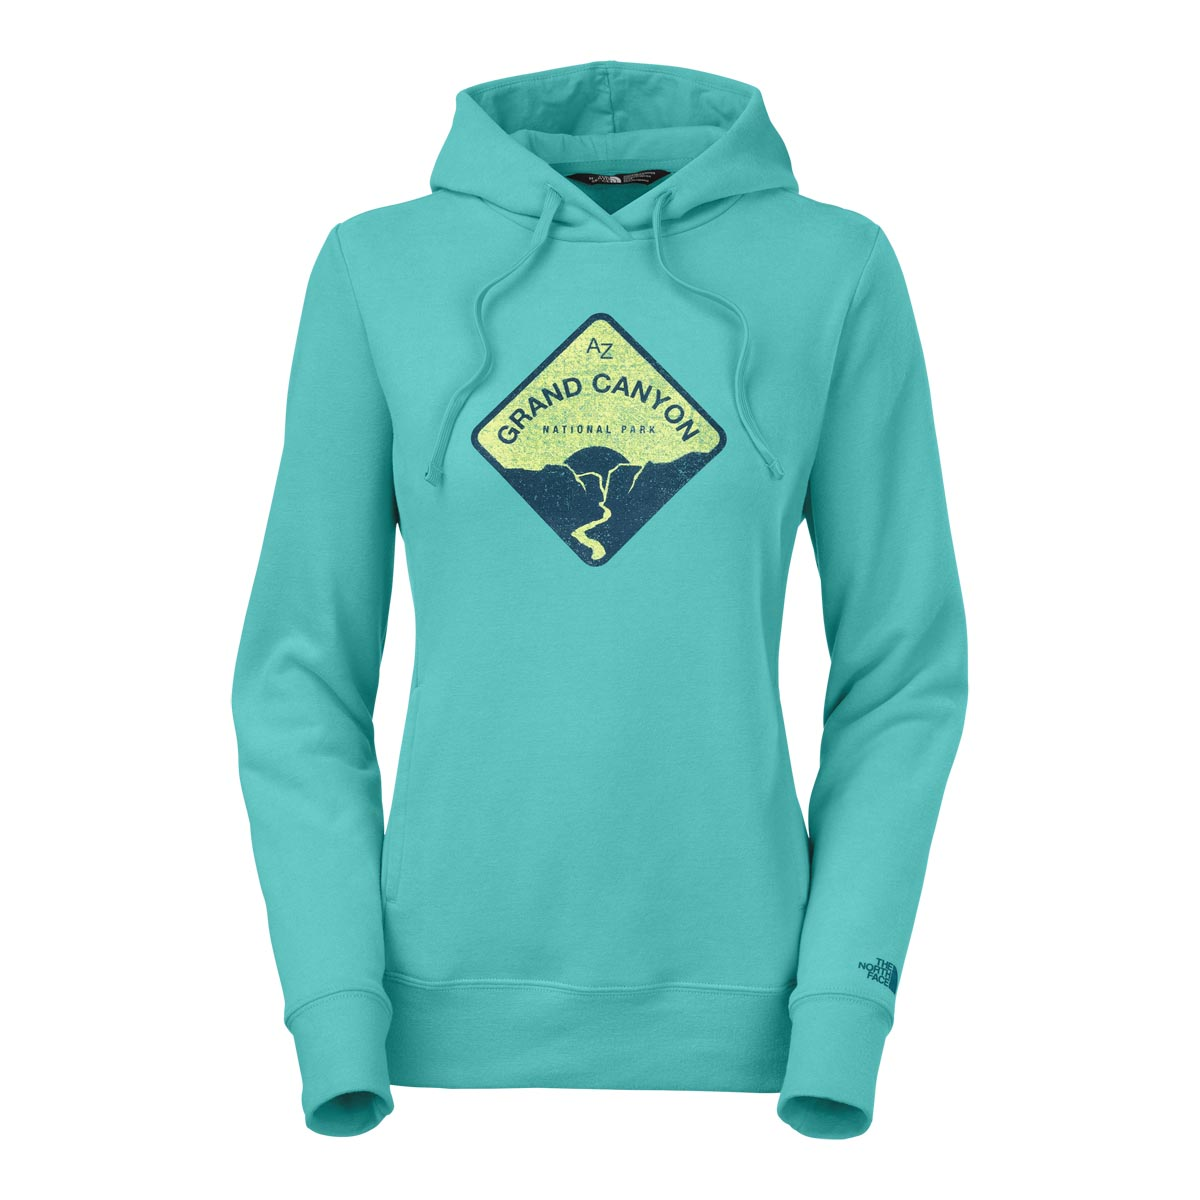 The North Face Women's National Parks Welt Pocket Hoodie